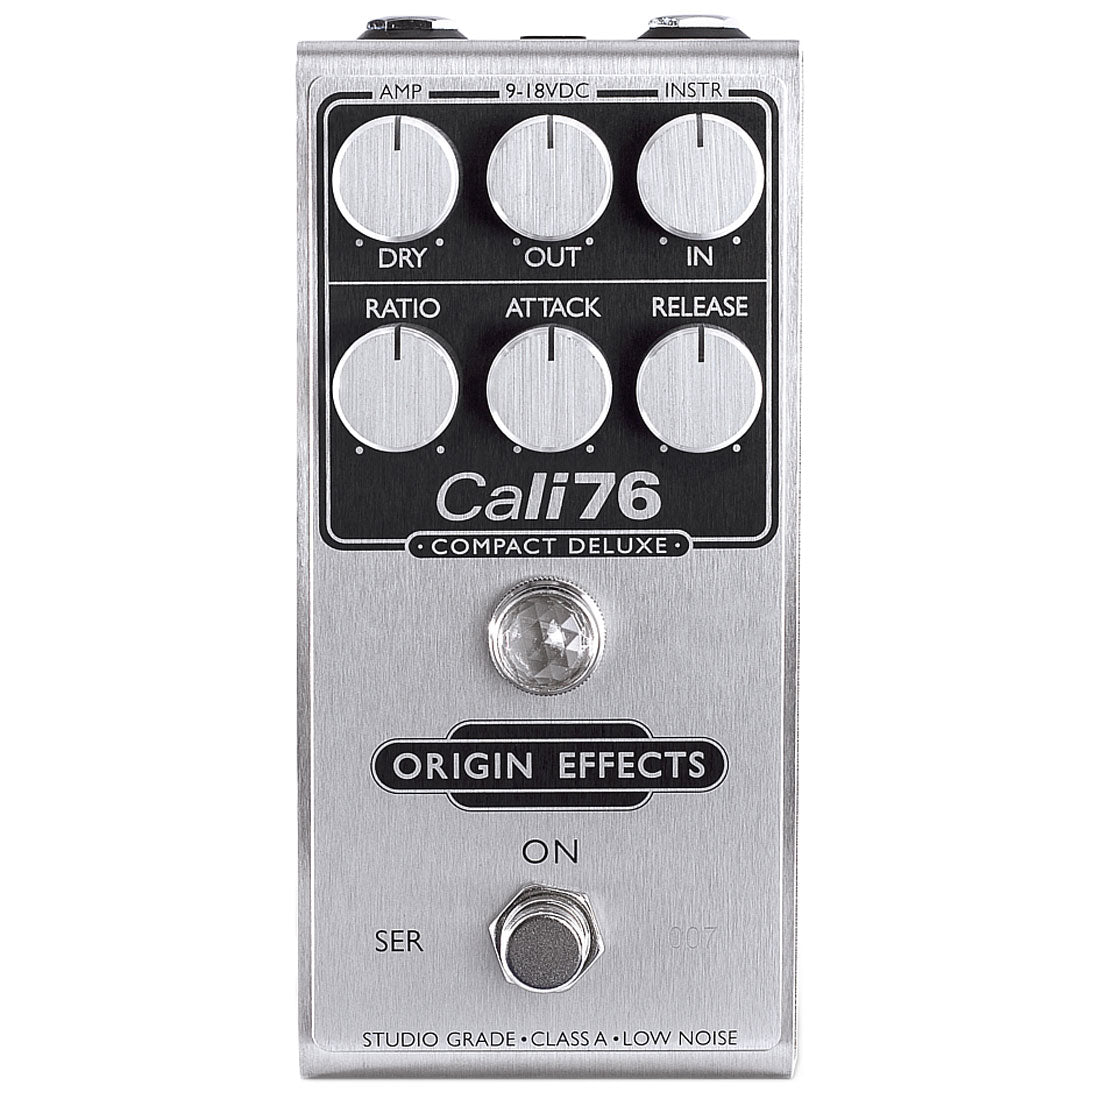 Origin Effects Cali 76 Compact Deluxe Compressor